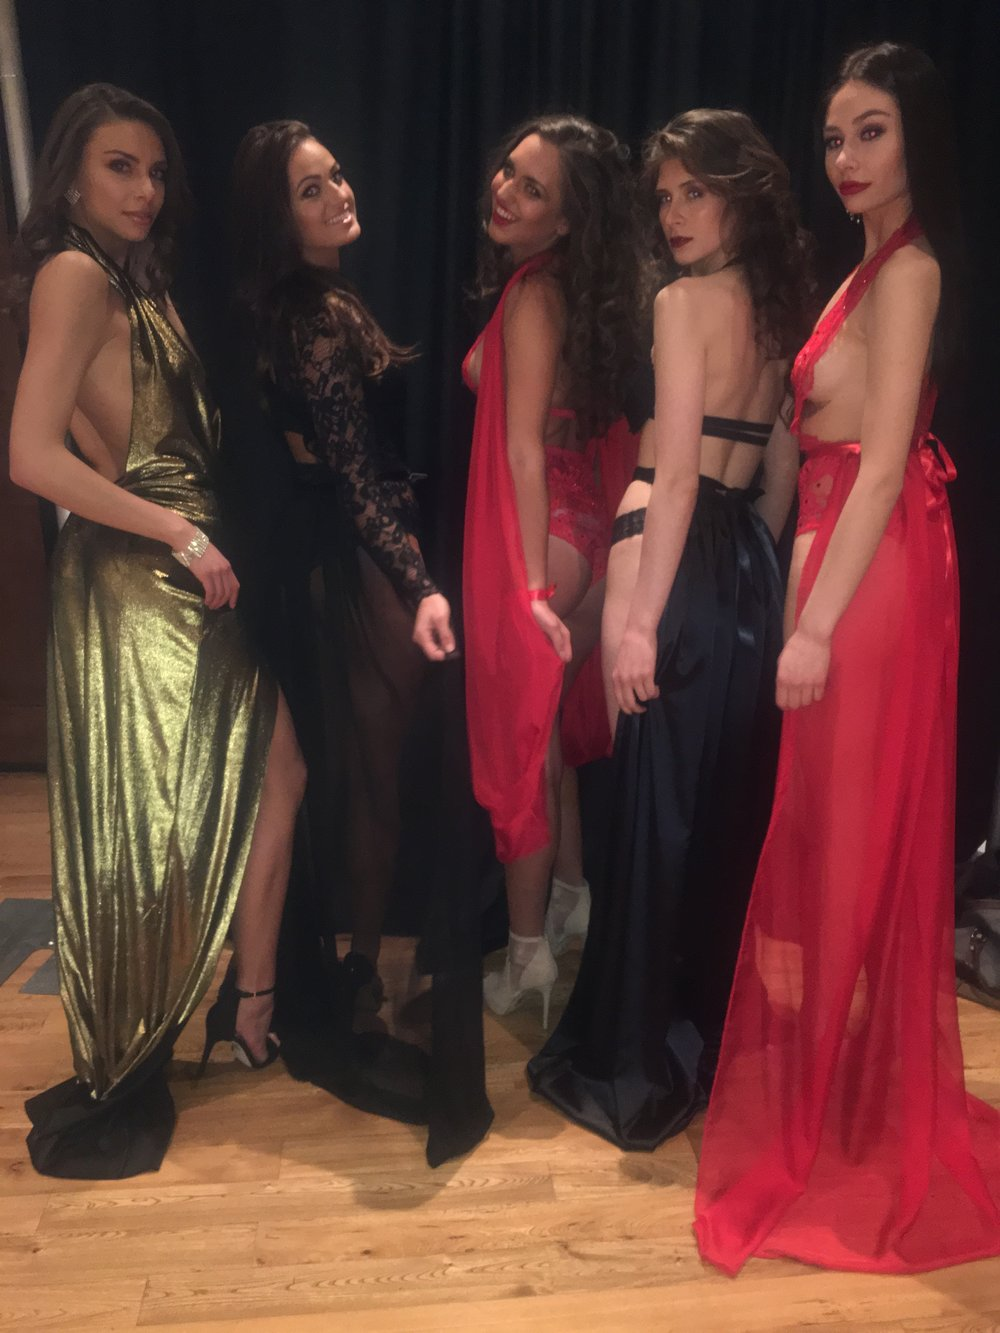 The fabulous models giving one last pose backstage before they walk the runway.